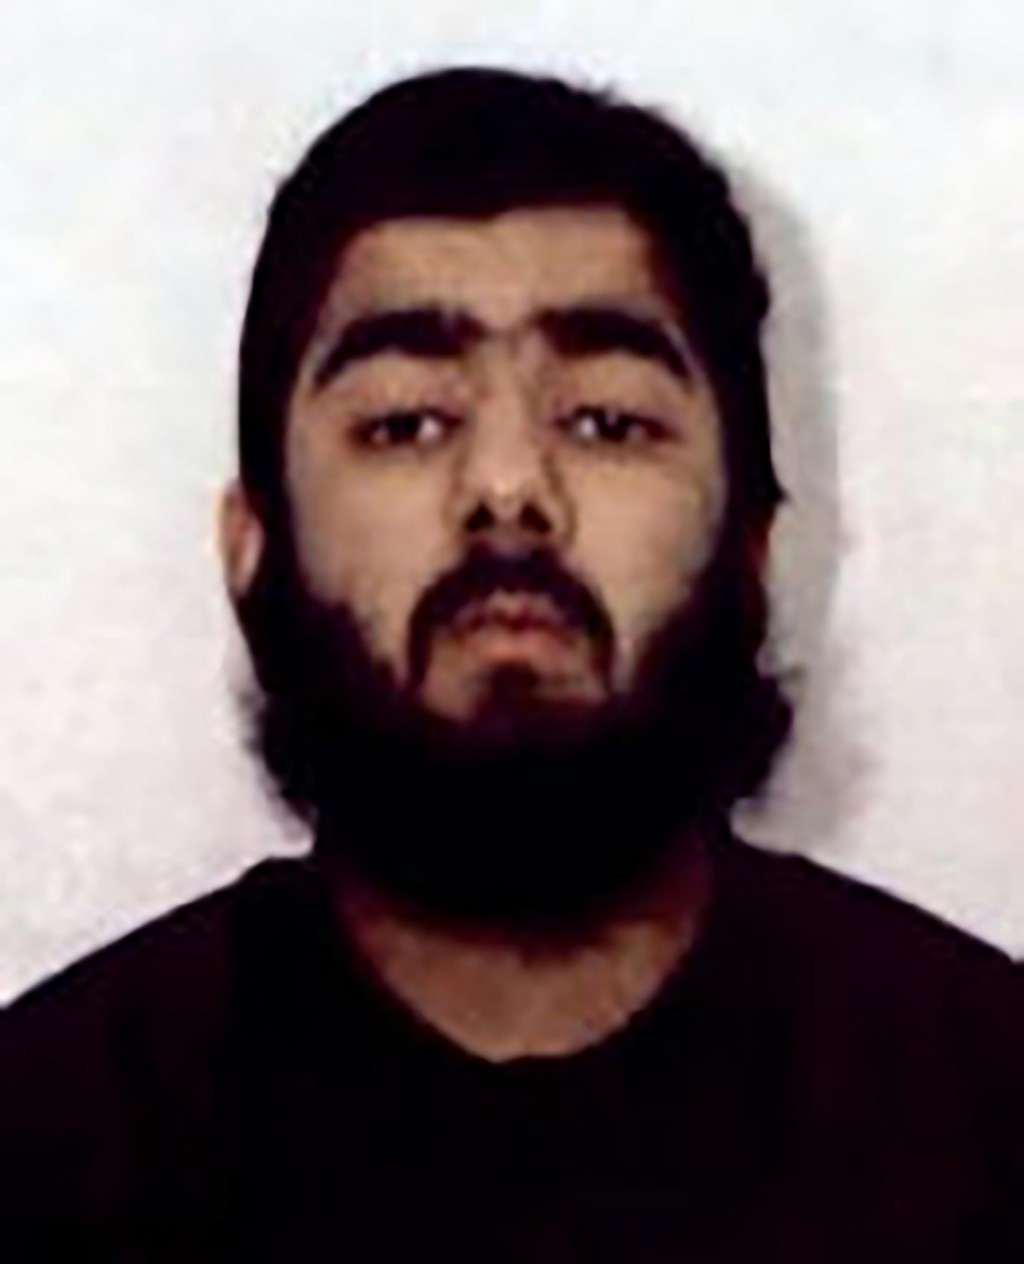 This undated photo provided by West Midlands Police shows Usman Khan. UK counterterrorism police are searching for clues into an attack that left two ...